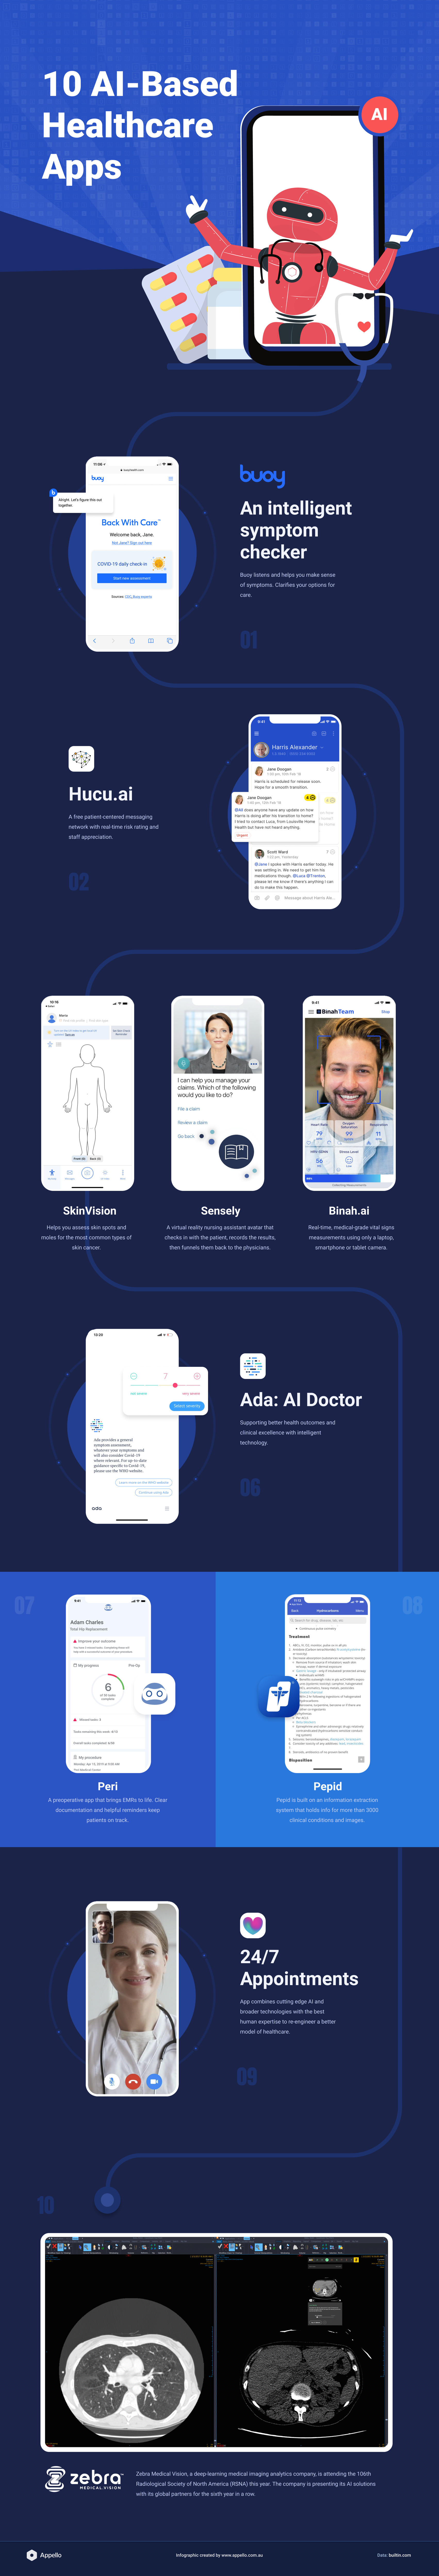 top 10 artificial intelligence AI-based mobile healthcare applications to inspire your business